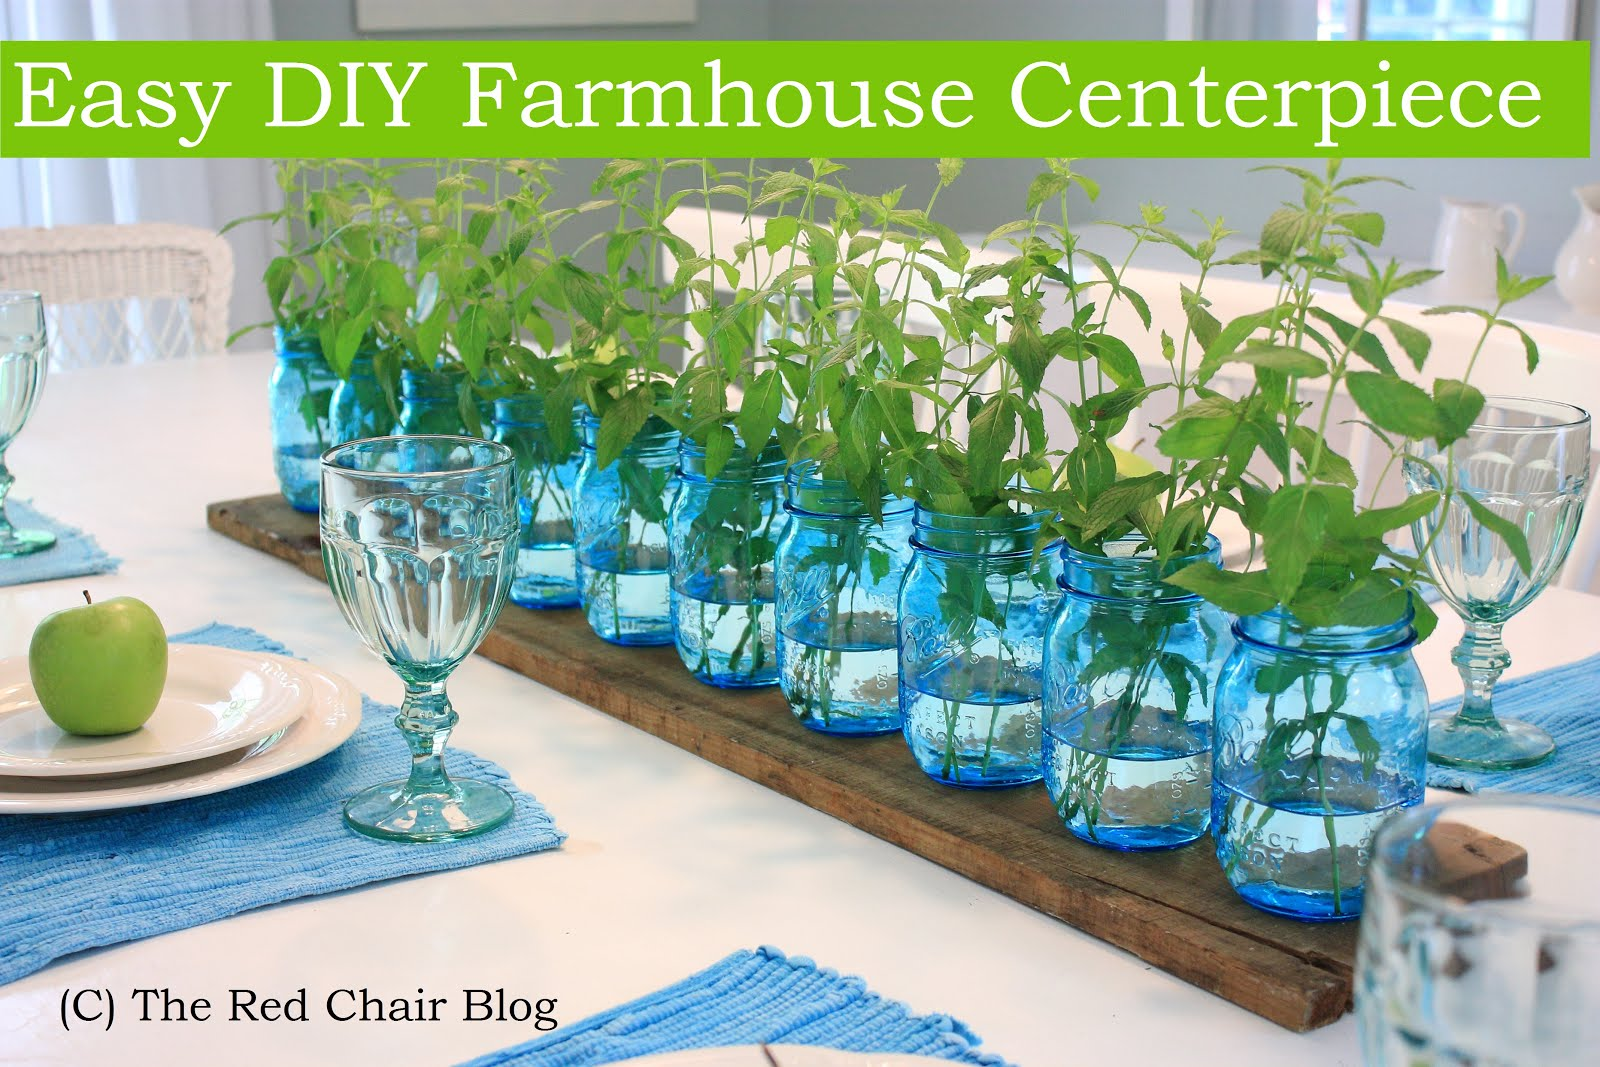 Easy DIY Farmhouse Centerpiece